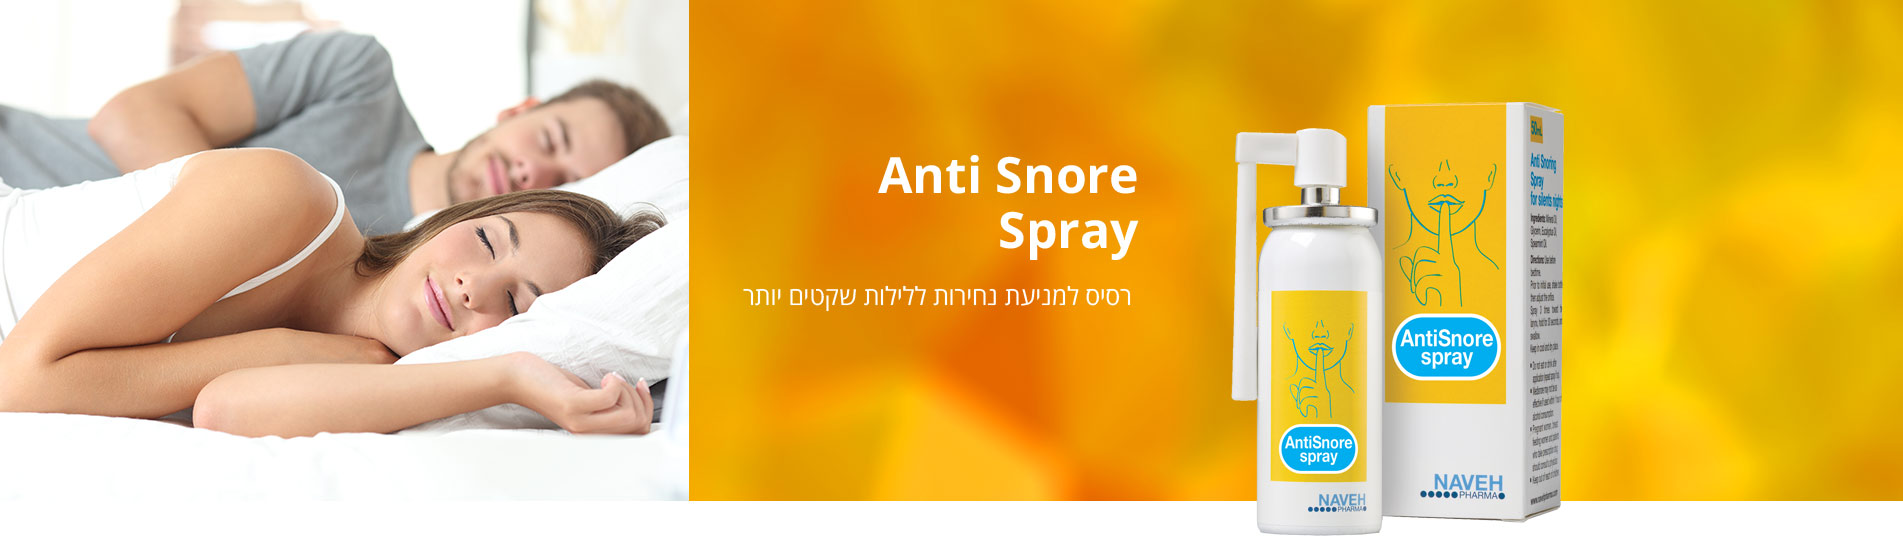 Anti Snore consept pic